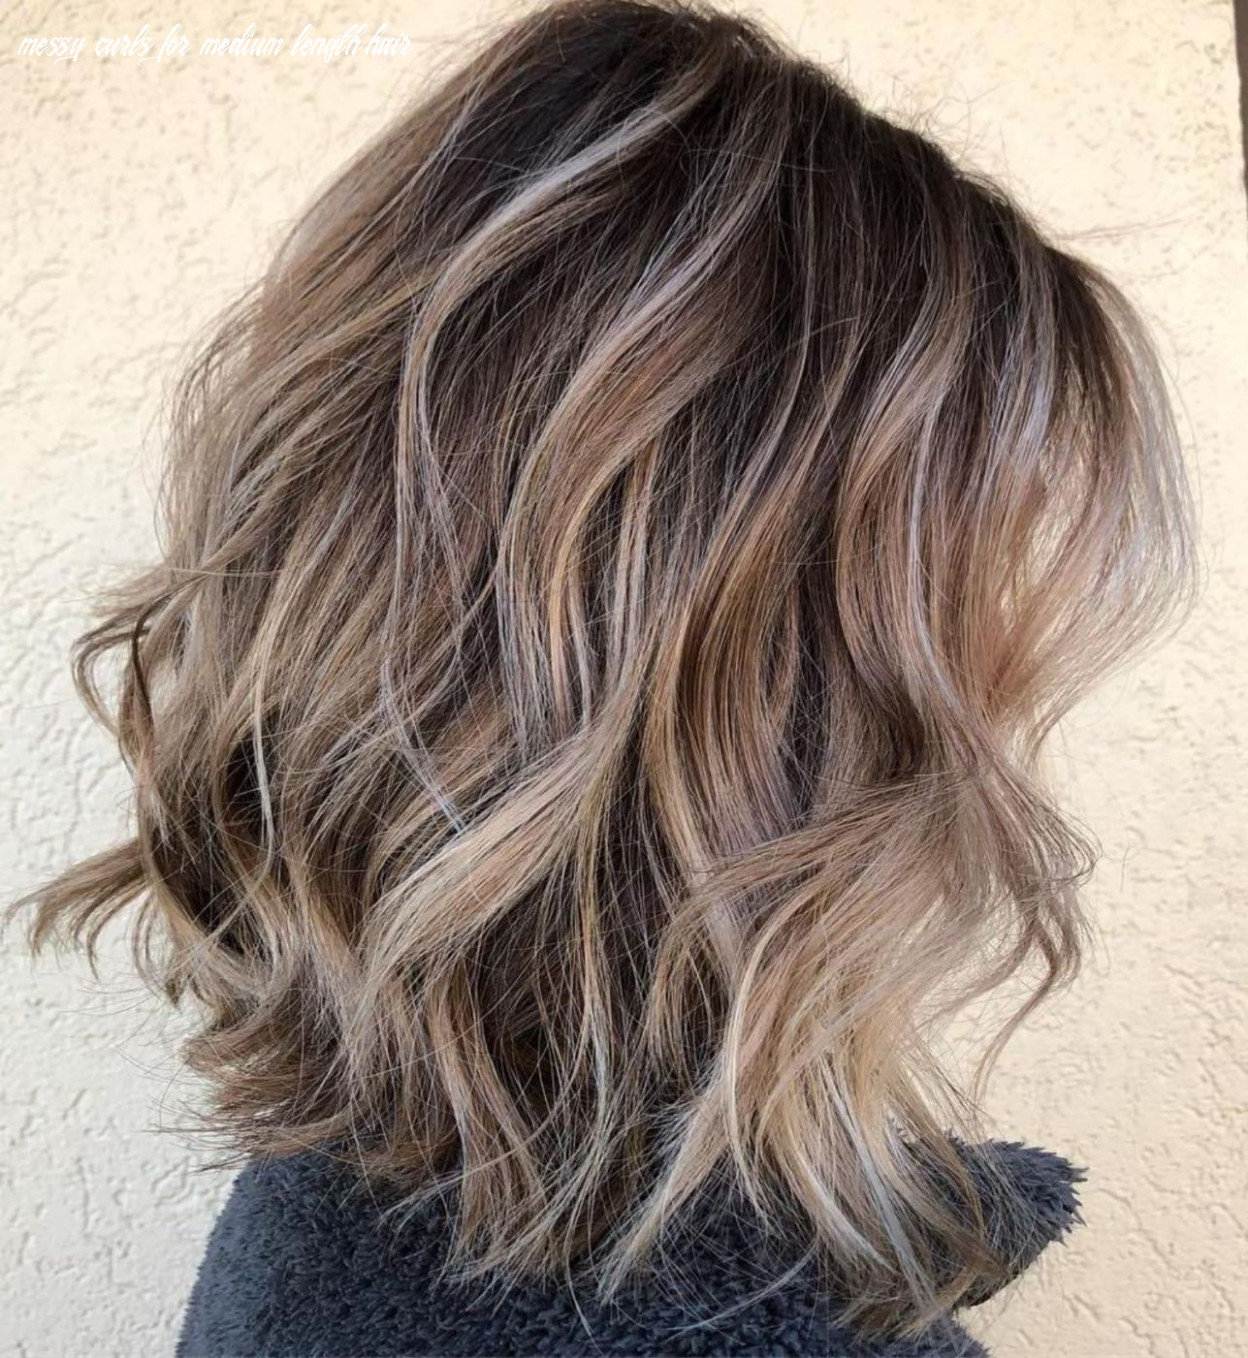 Pin on s t y l e messy curls for medium length hair